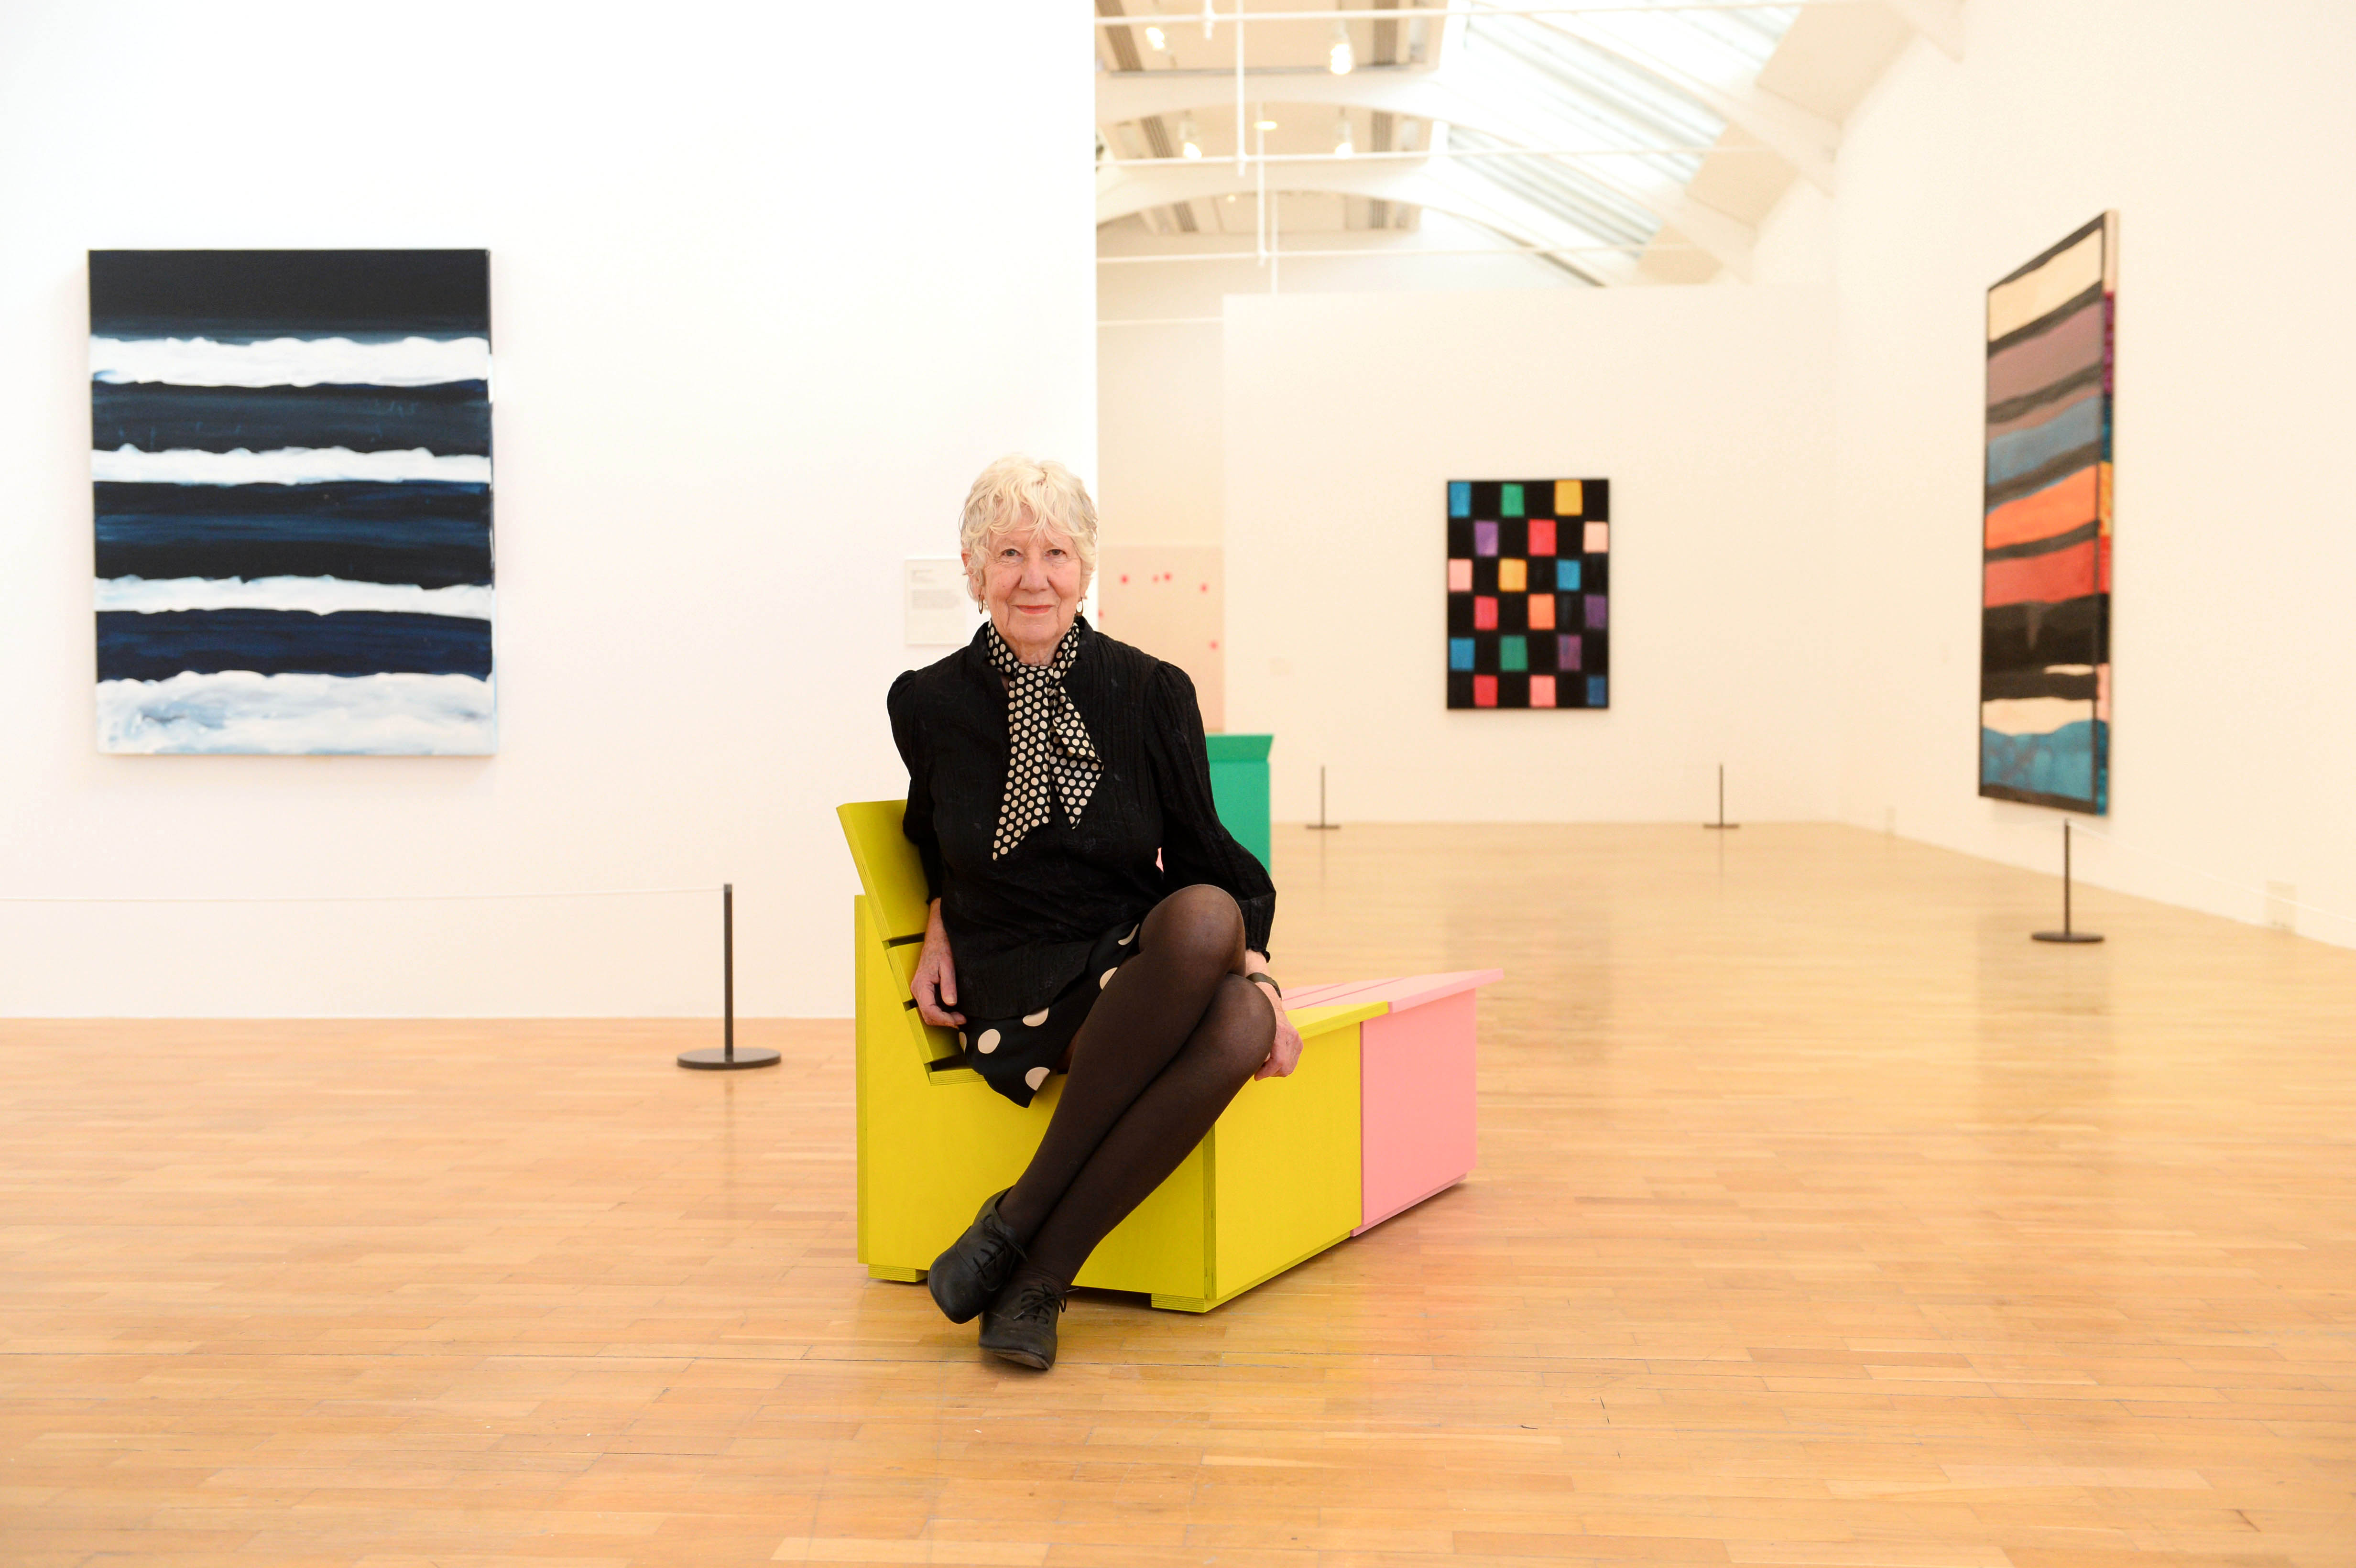 whitechapel gallery the artists gallery for everyone artist mary heilmann at the press view of the mary heilmann looking at pictures exhibition